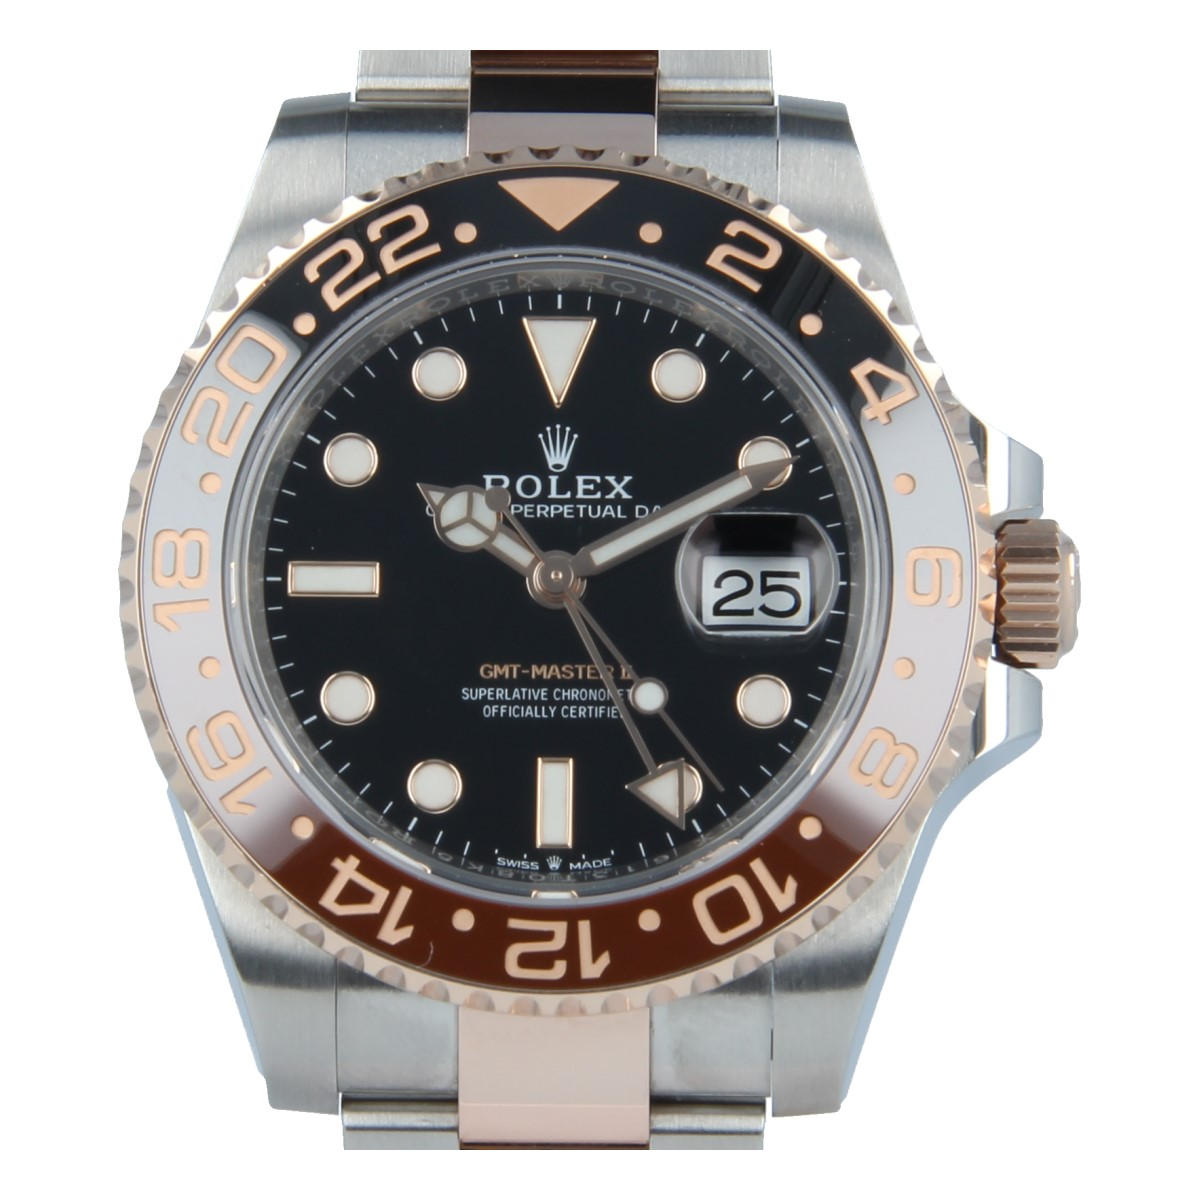 191a07d67aea Rolex GMT Master II 126711 CHNR Steel and Everose Gold